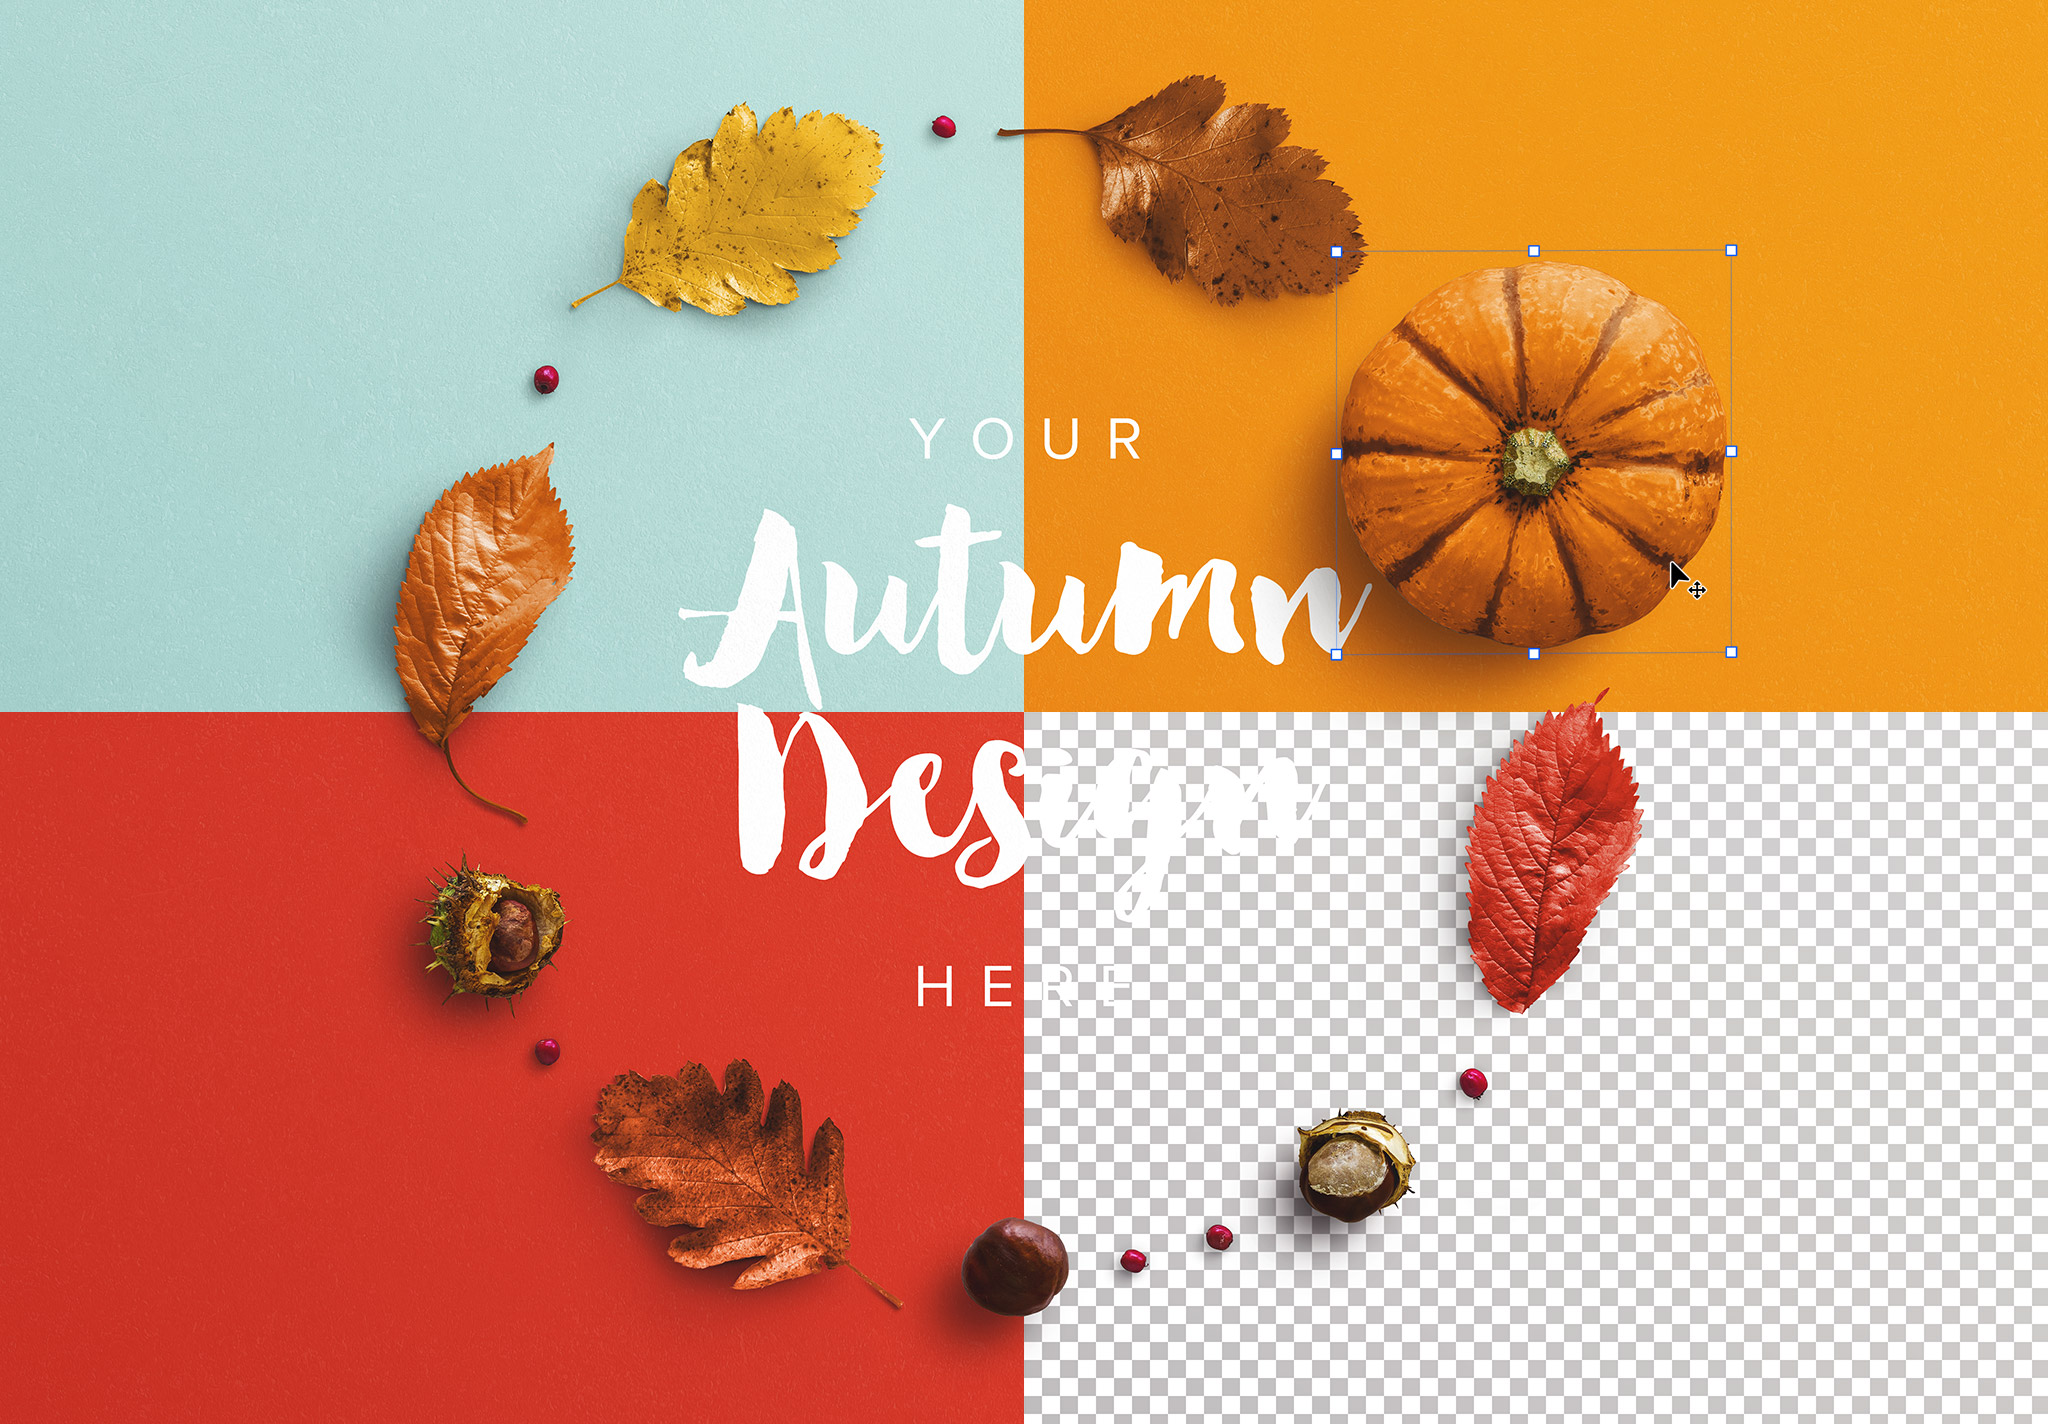 Autumn Frame Pumpkin and Leaves Mockup image02